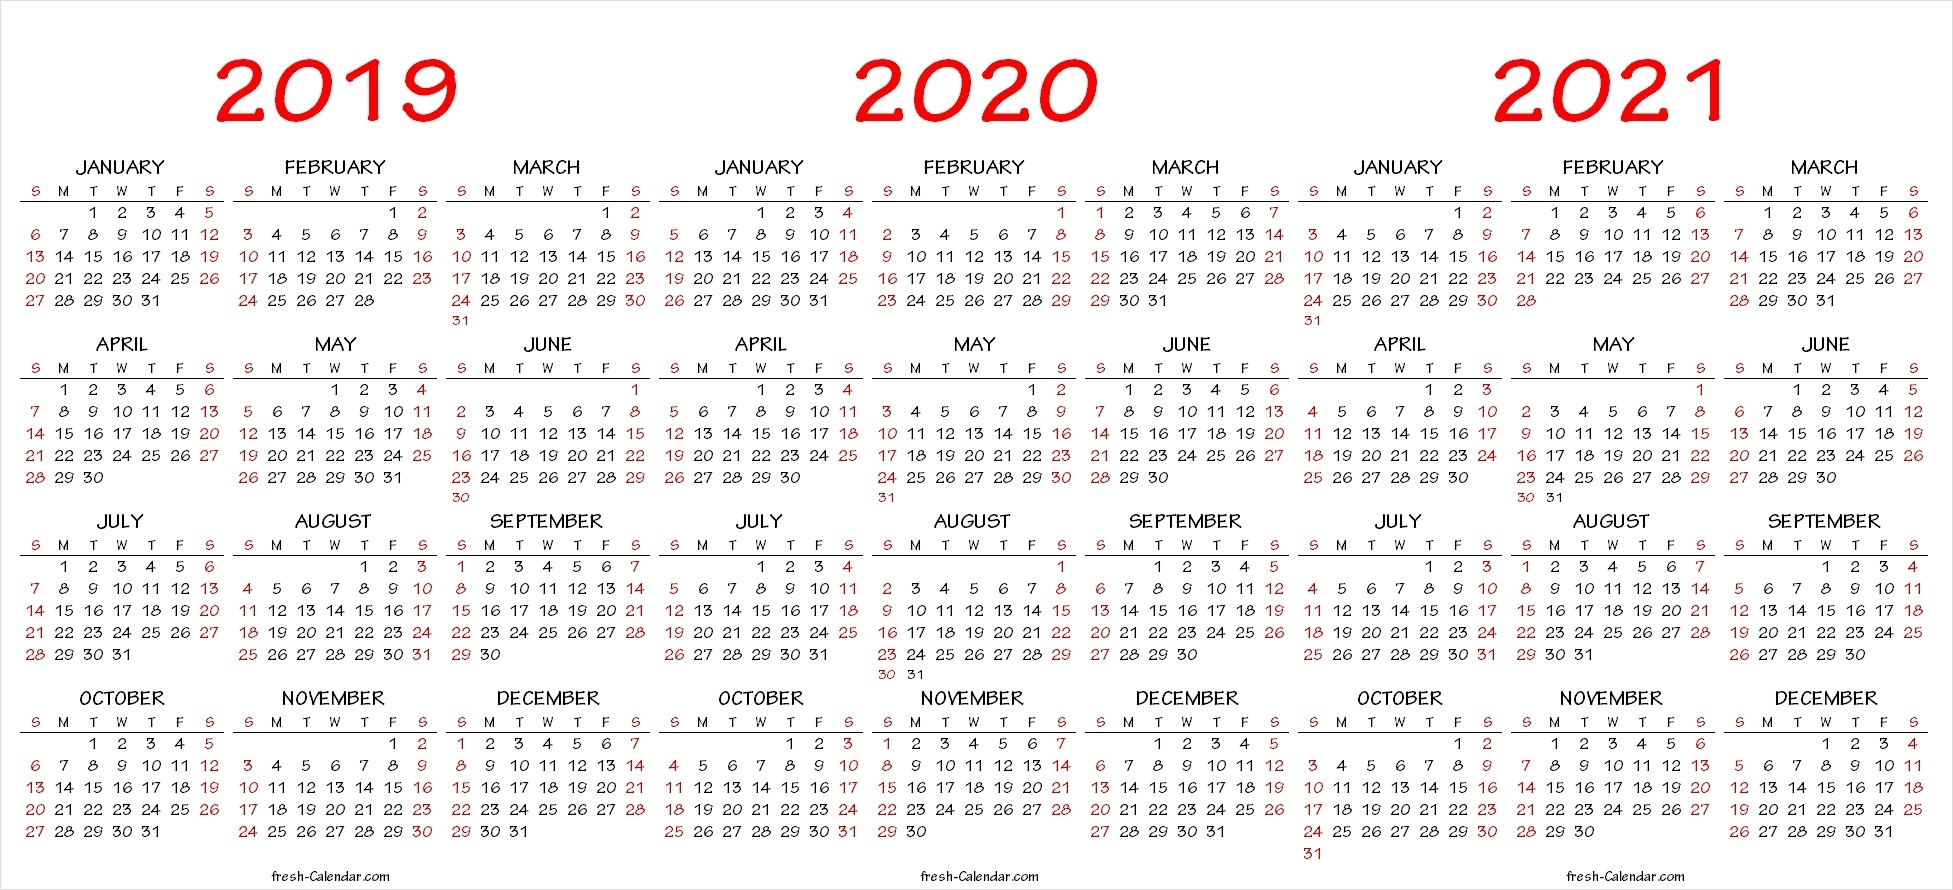 Three Yearly Calendar 2019 2020 2021 Printable Free | Blank Template pertaining to Yearly Calendar 2019 2020 2021